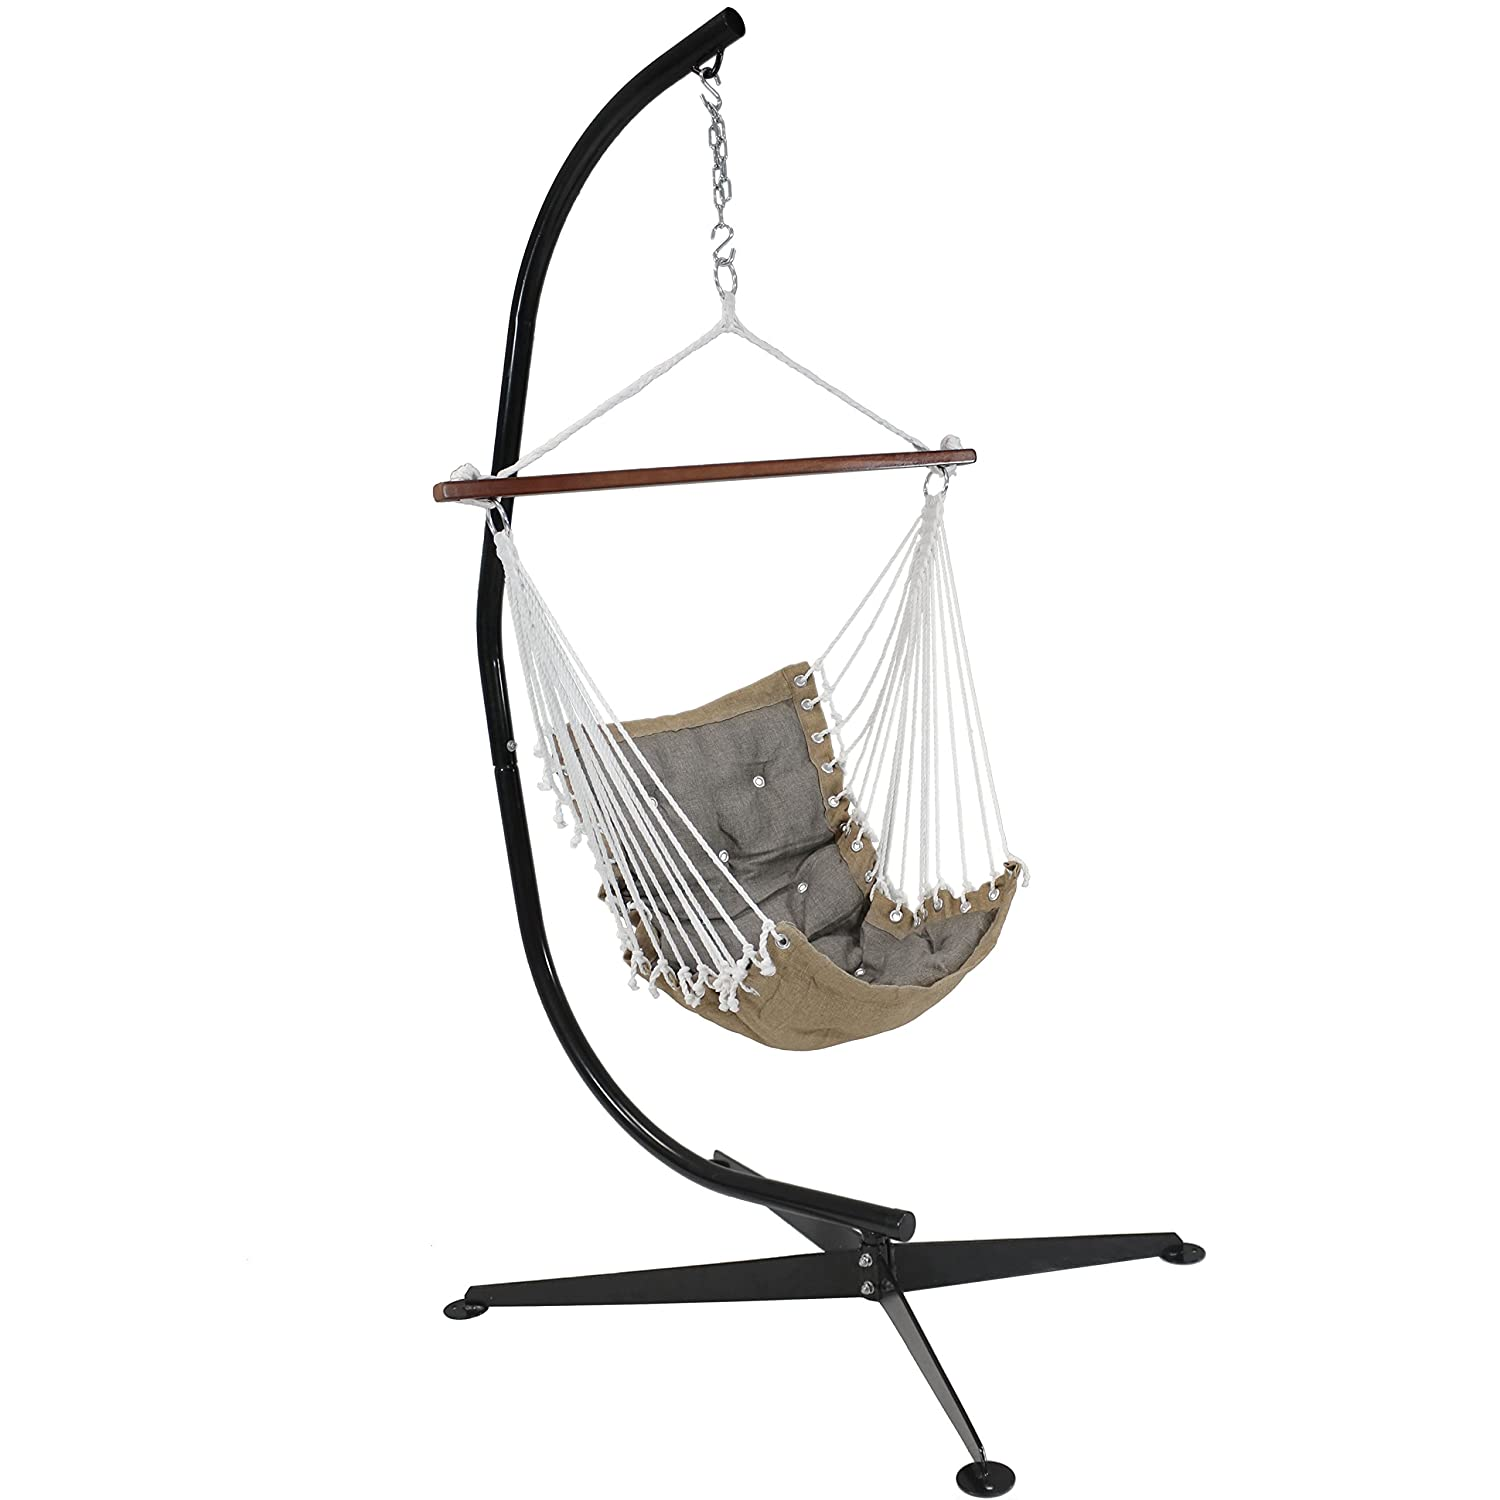 Sunnydaze Tufted Victorian Hammock Swing with C-Stand Gray 300-Pound Weight Capacity